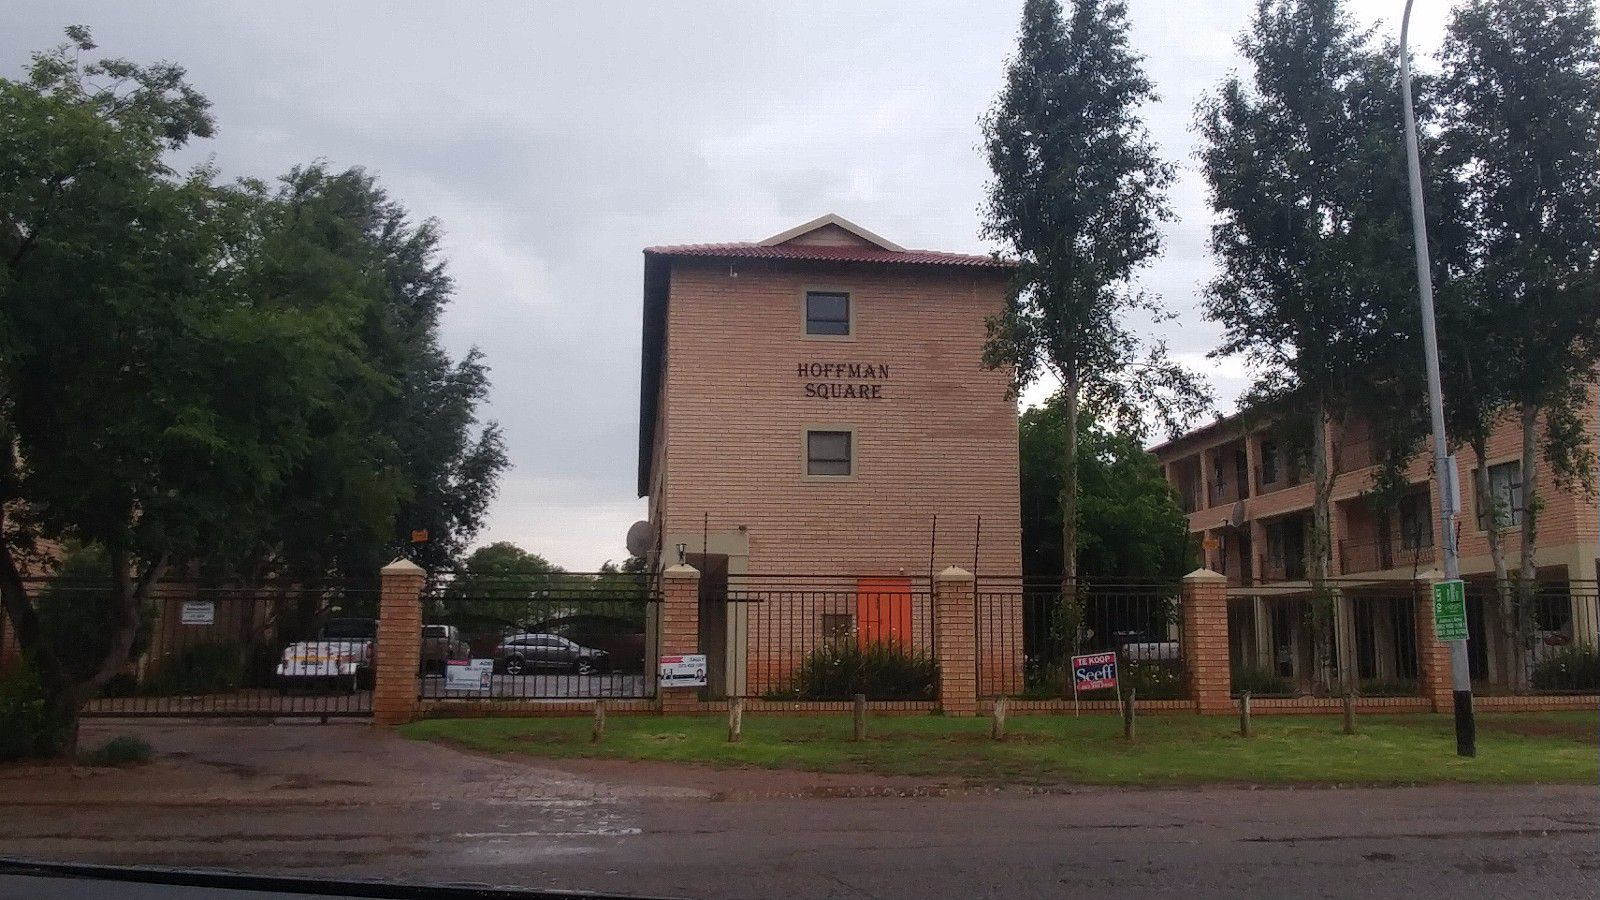 Potchefstroom Central property for sale. Ref No: 13414021. Picture no 1